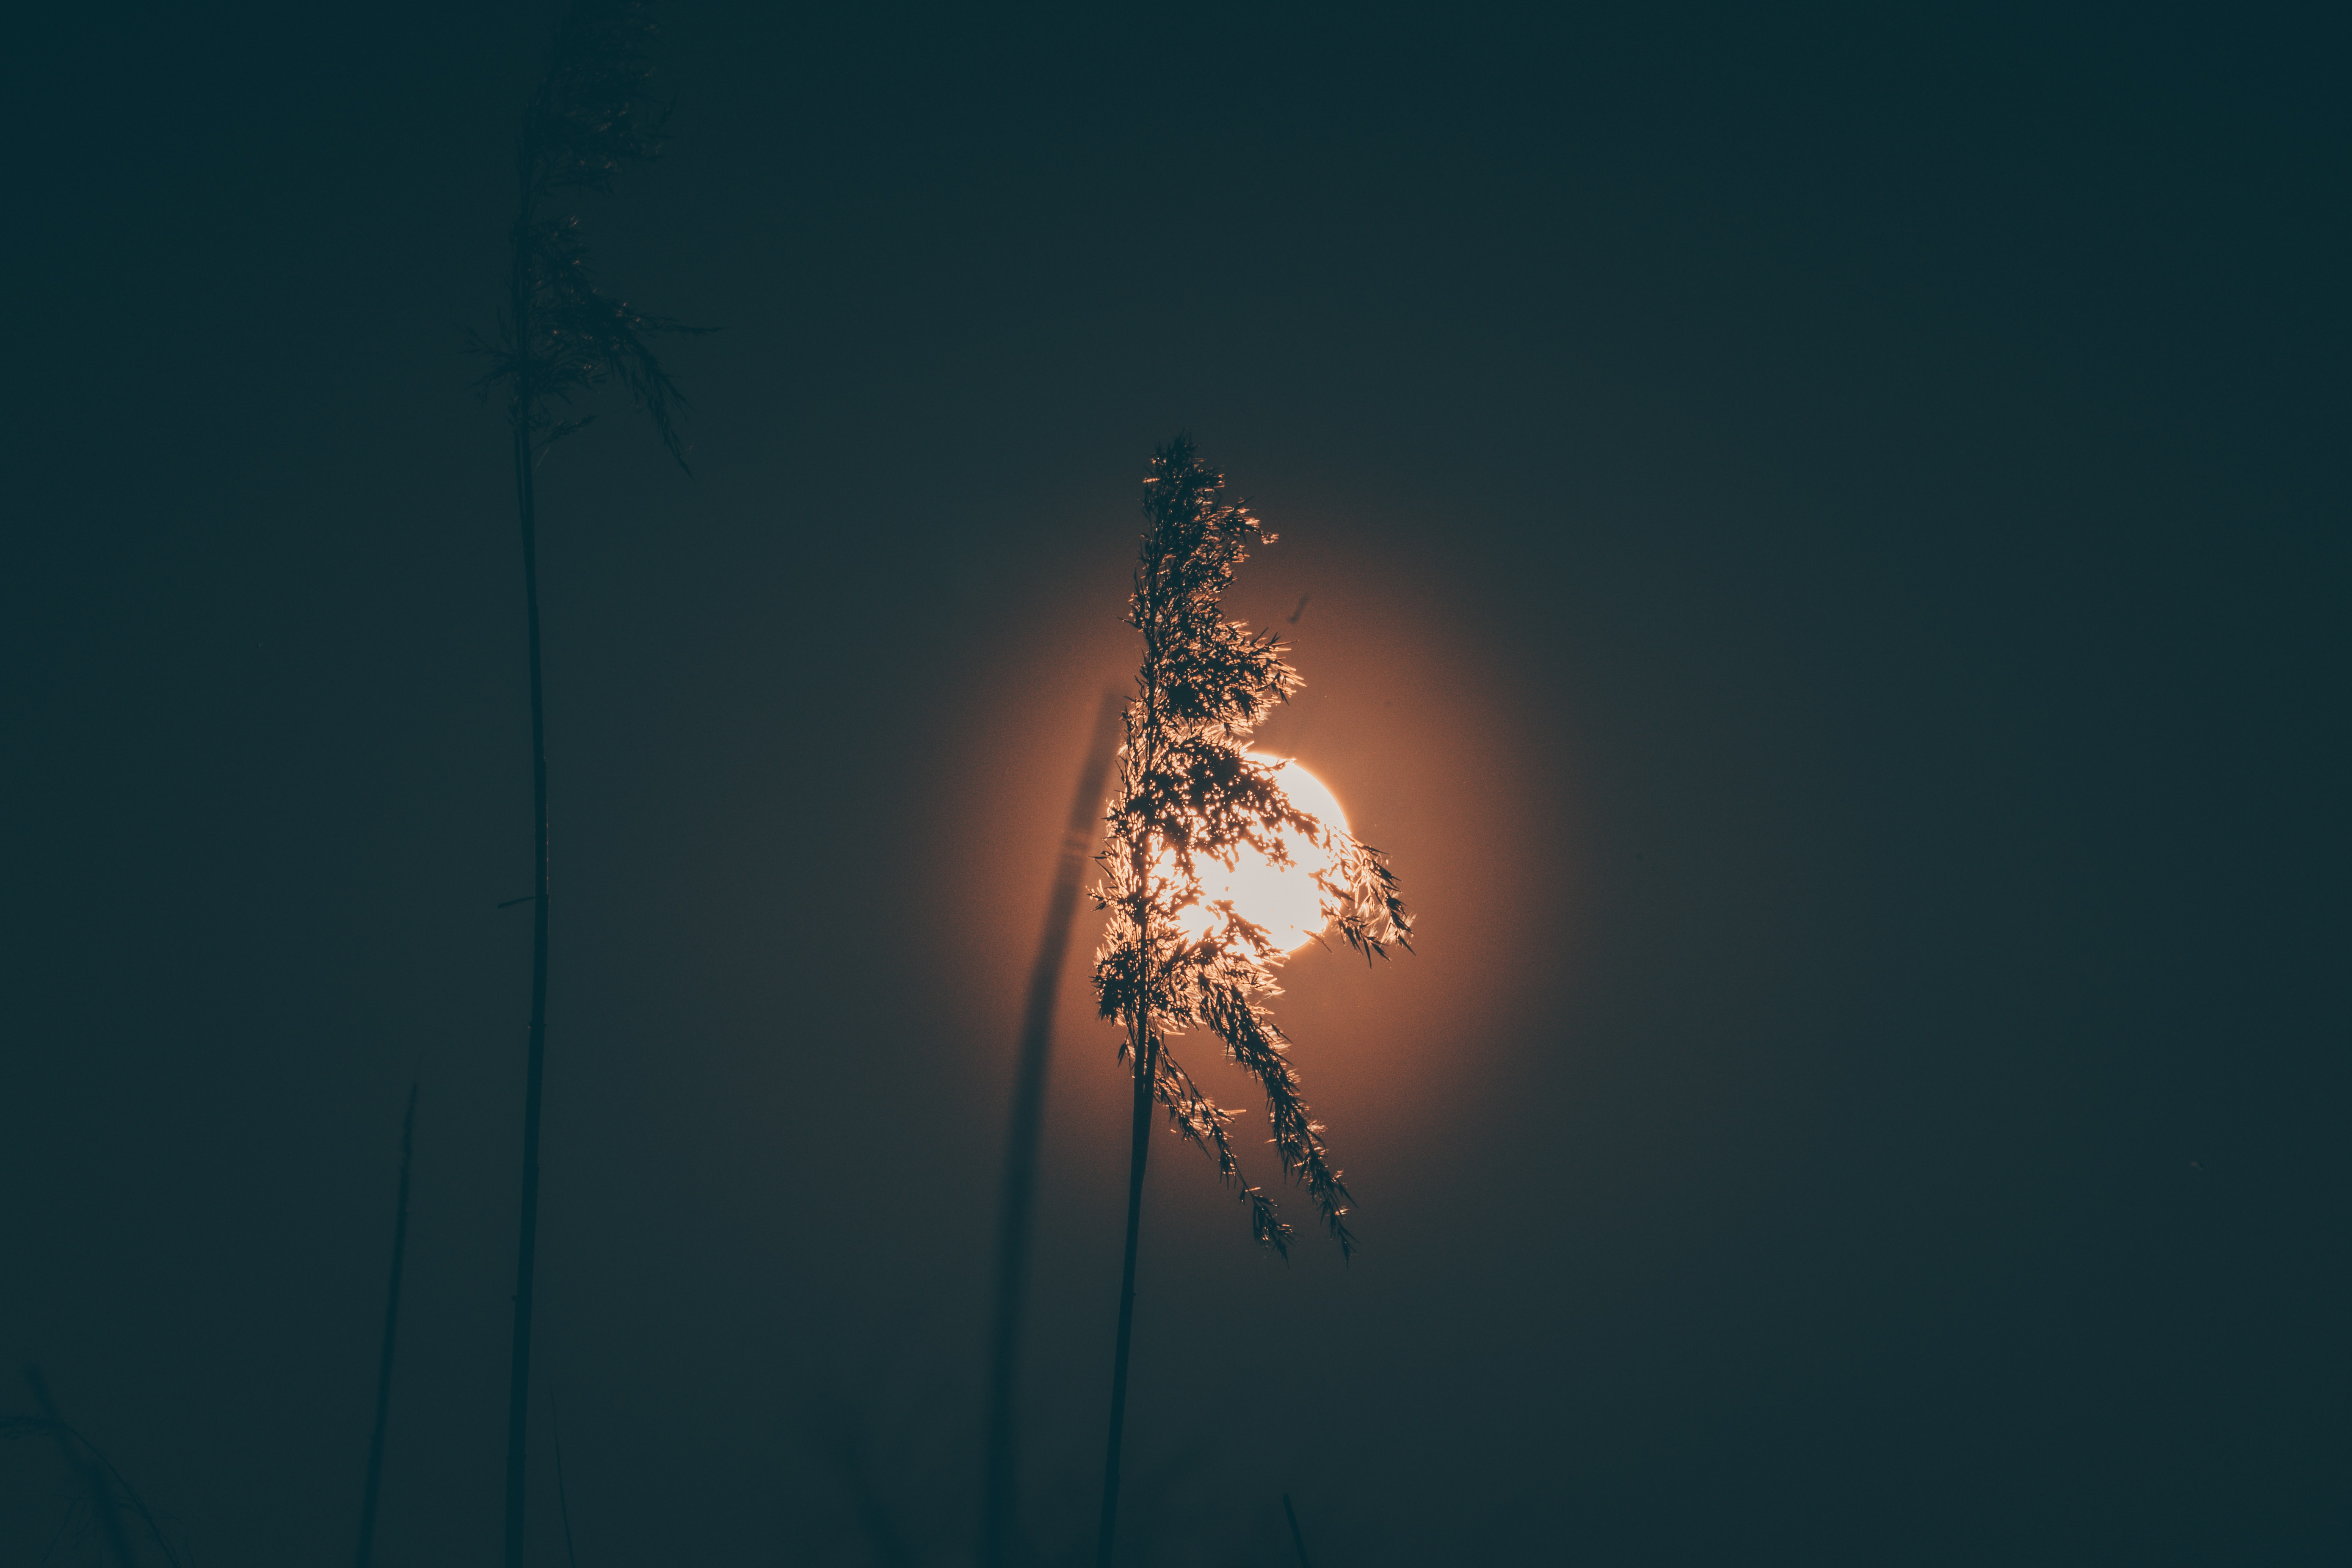 silhouette of plant during night time